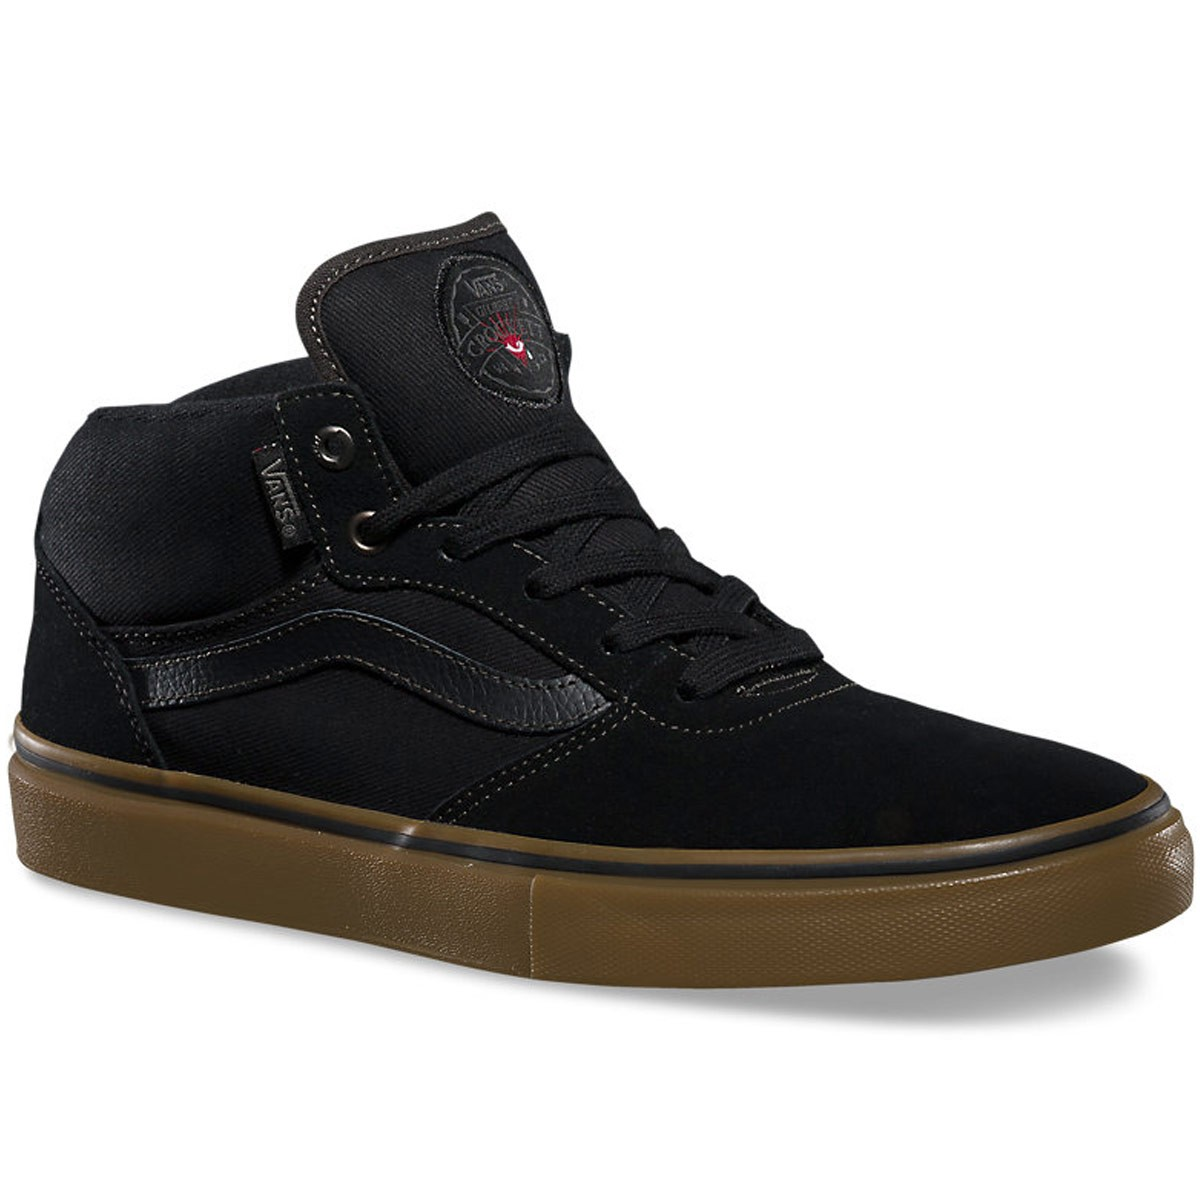 Vans Gilbert Crockett Pro Mid Shoes